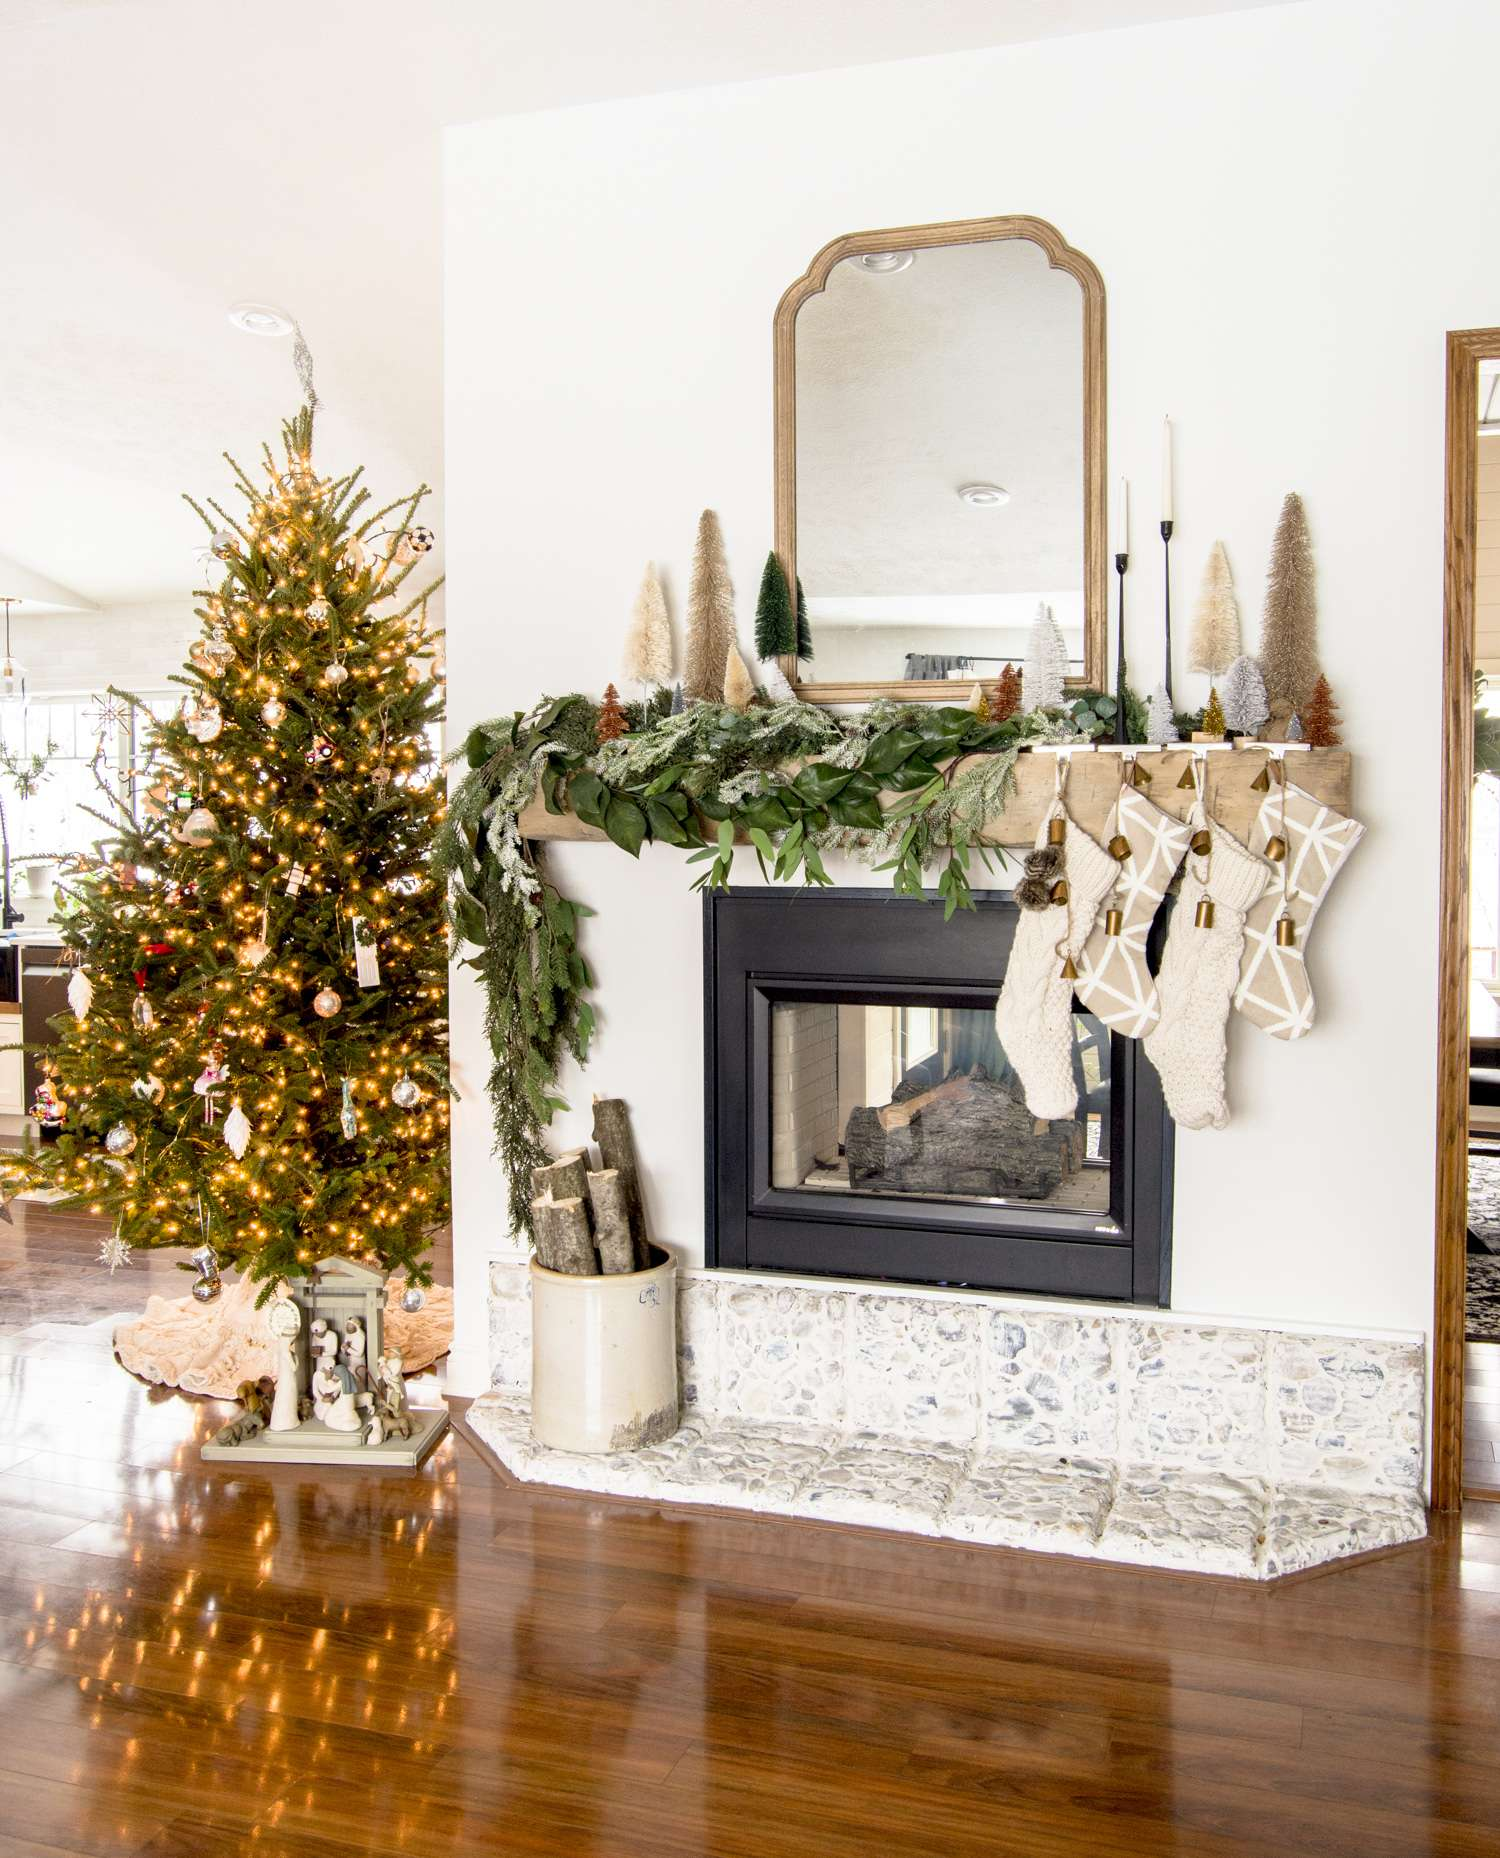 Family Christmas tree decor that is elegant and meaningful.